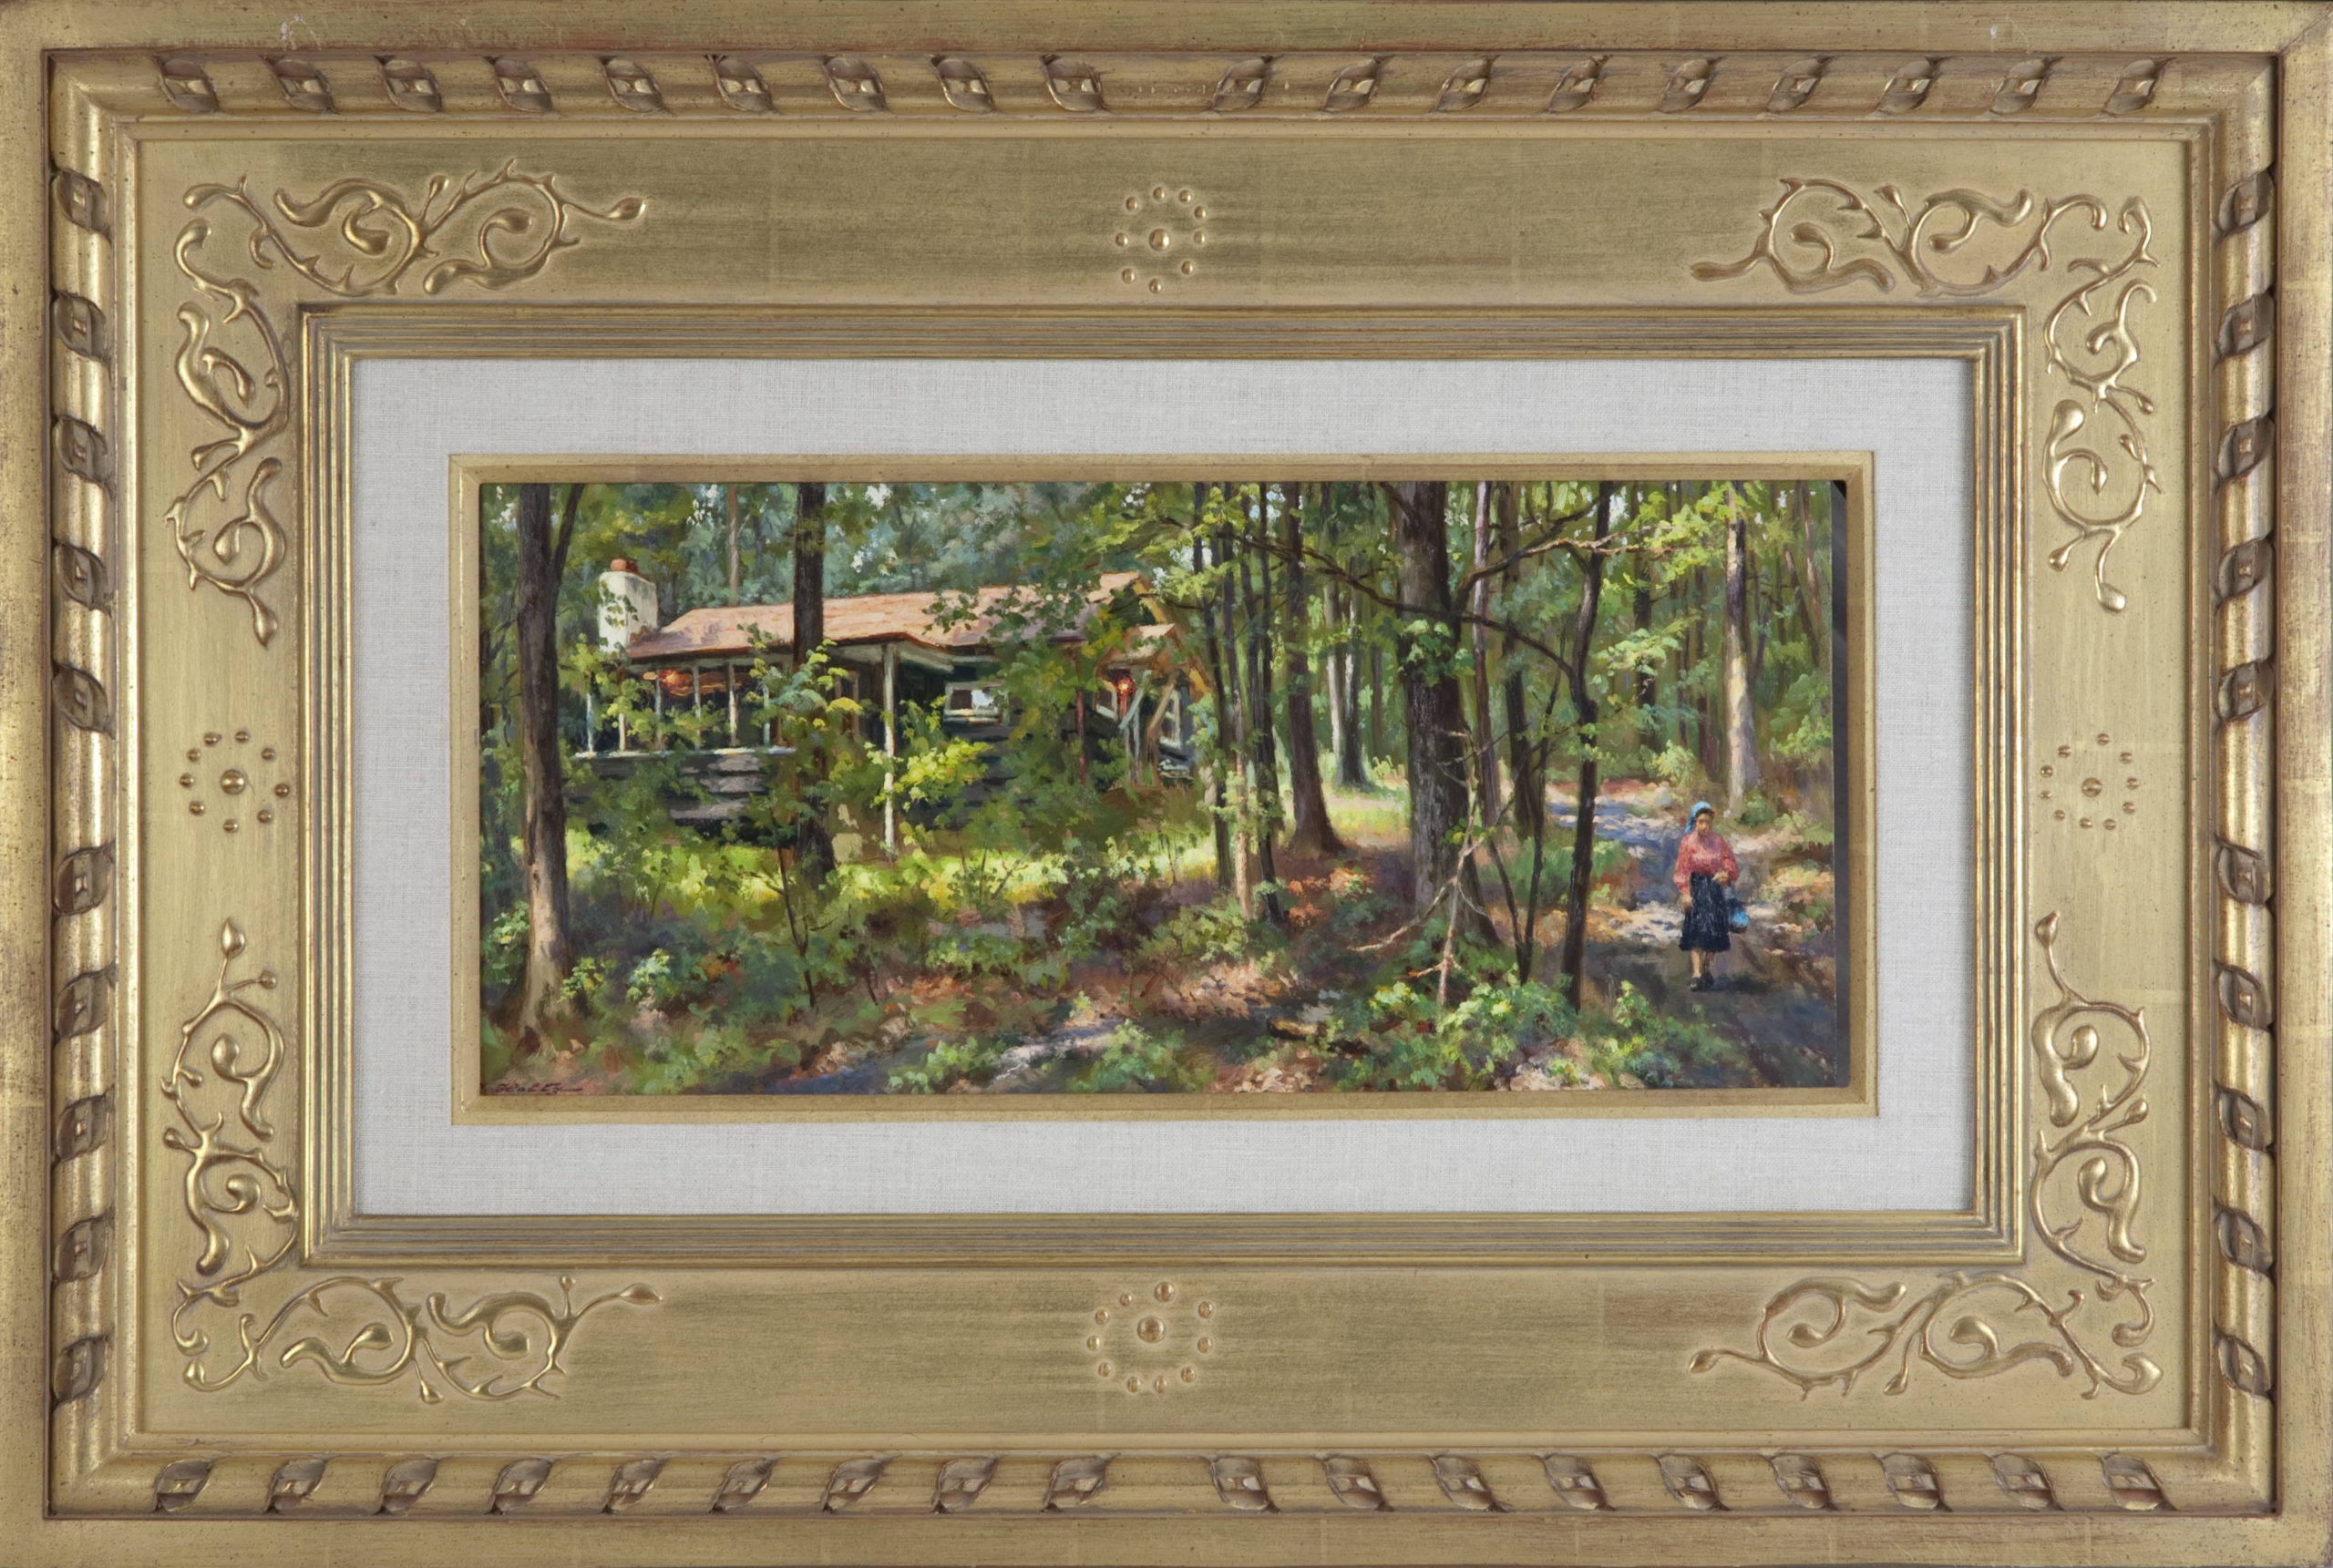 034 Bungalow 1978 - Oil on Masonite - 18 x 8 - Frame: 30 x 20 x 1.75